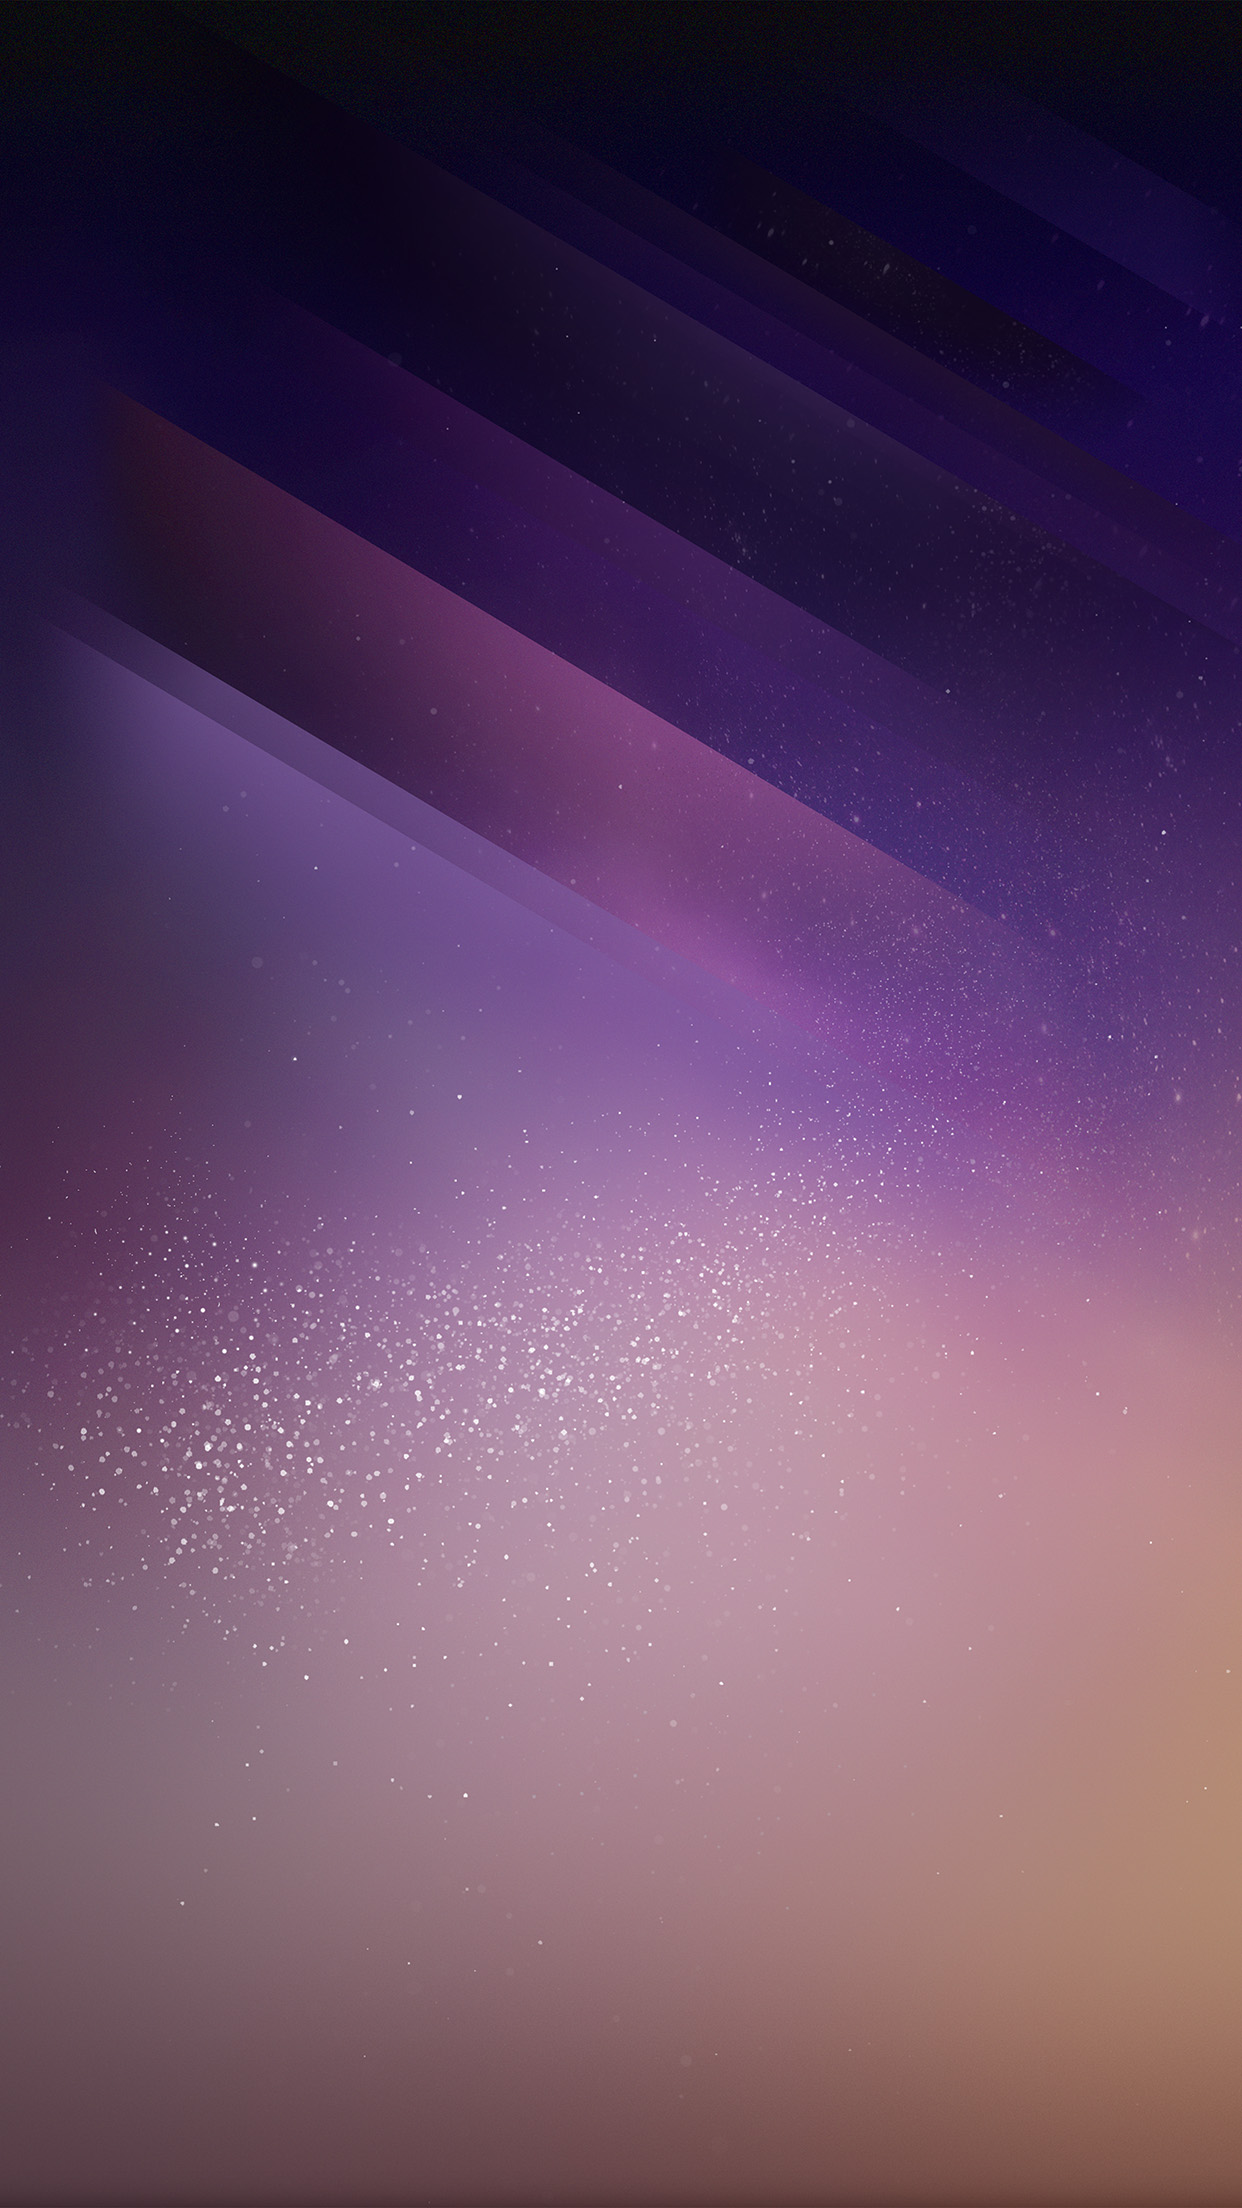 vw11-beautiful-galaxy-s8-samsung-soft-pattern-background ...